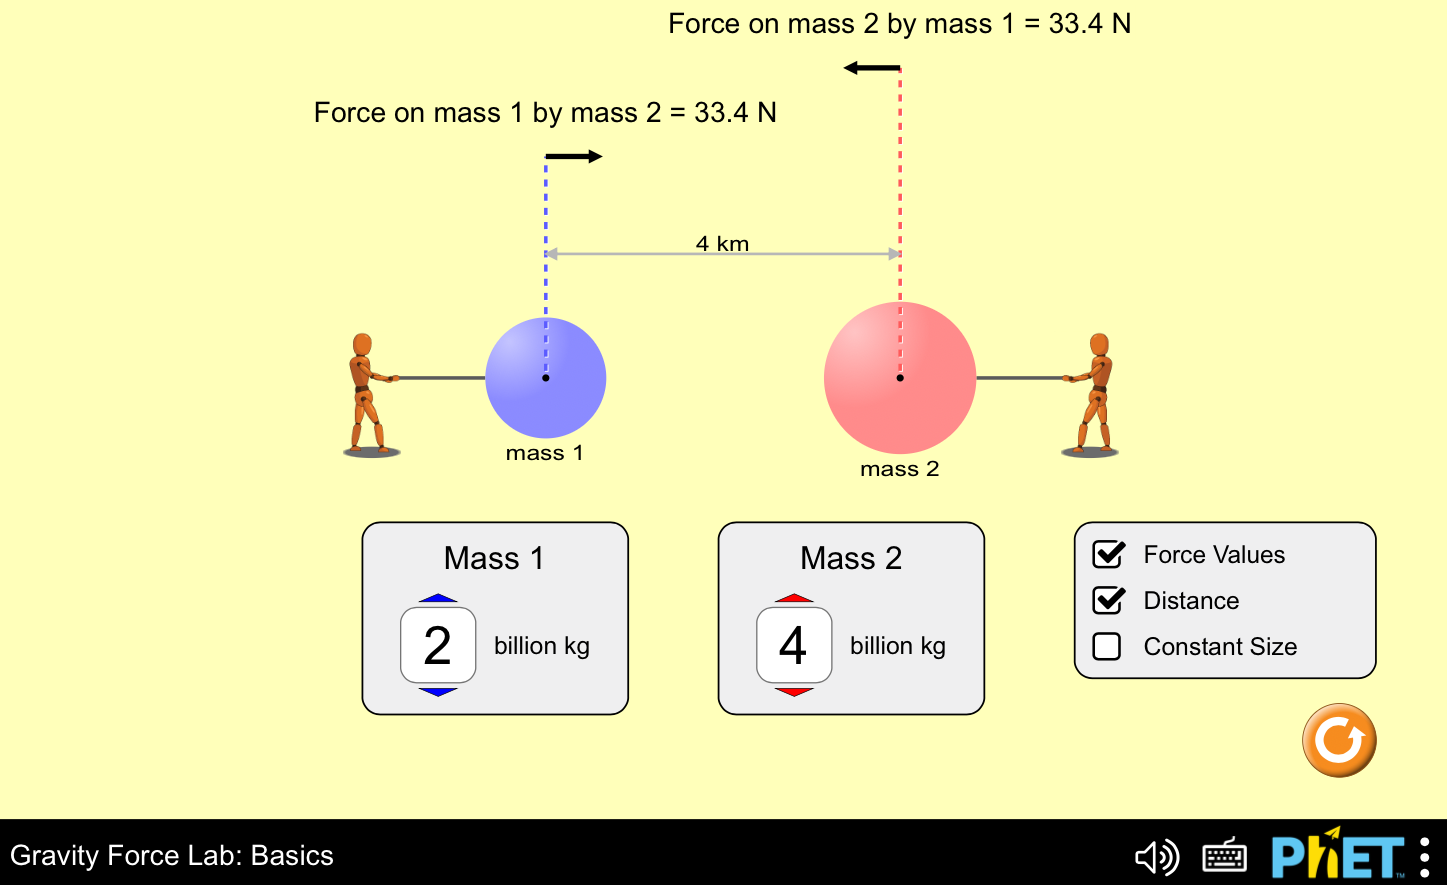 Screenshot: Phet Simulation - Gravity Force Lab Basics.  Two human shaped figures pulling on a large ball where you can adjust the masses in billions of Kilograms and see the resulting force applied.